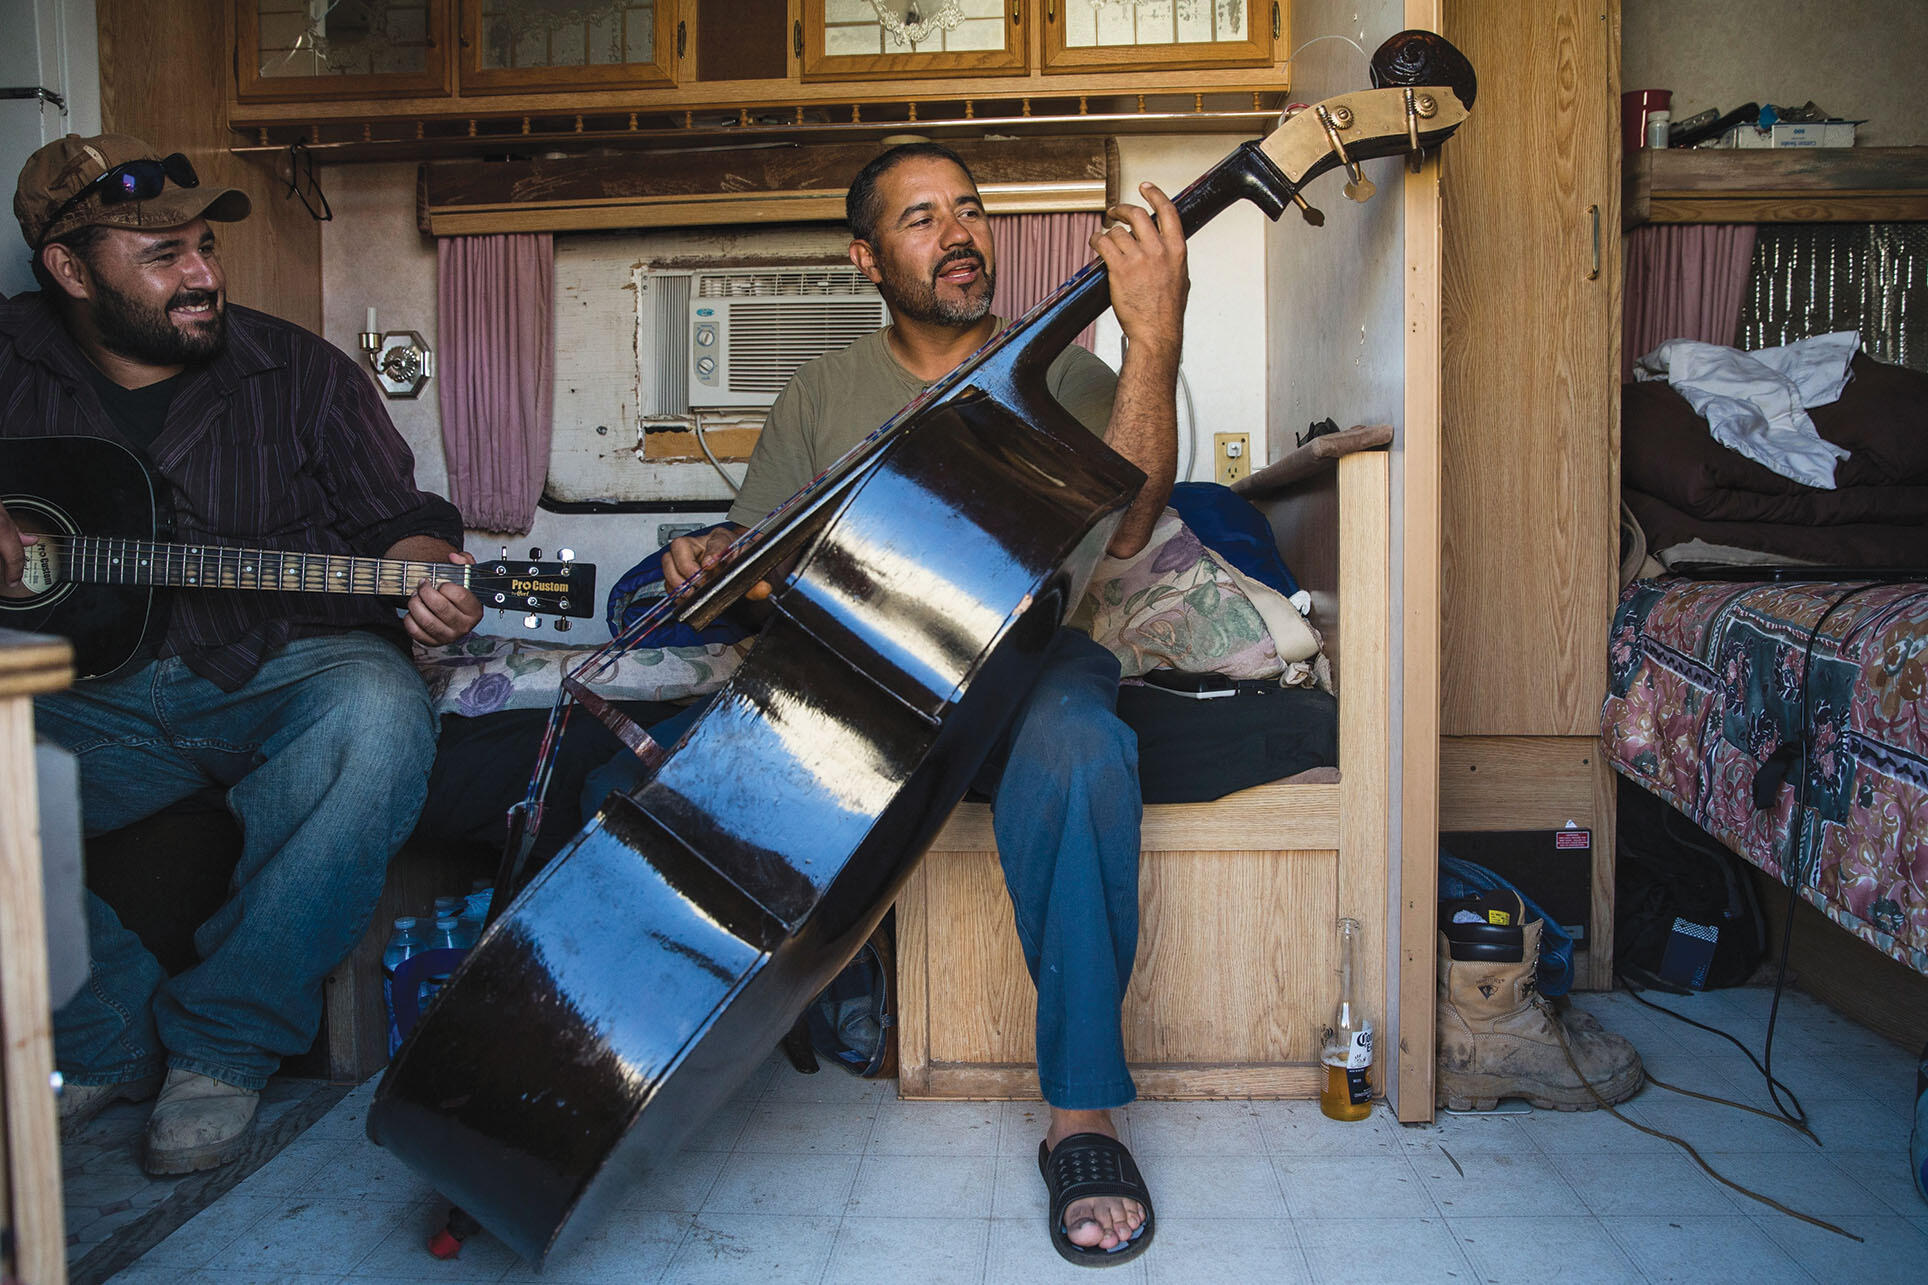 North Dakota has seen an influx of workers, such as these playing Latin American music, from around the globe due to its recent oil boom. (Photo by Andrew Burton/Getty Images.)